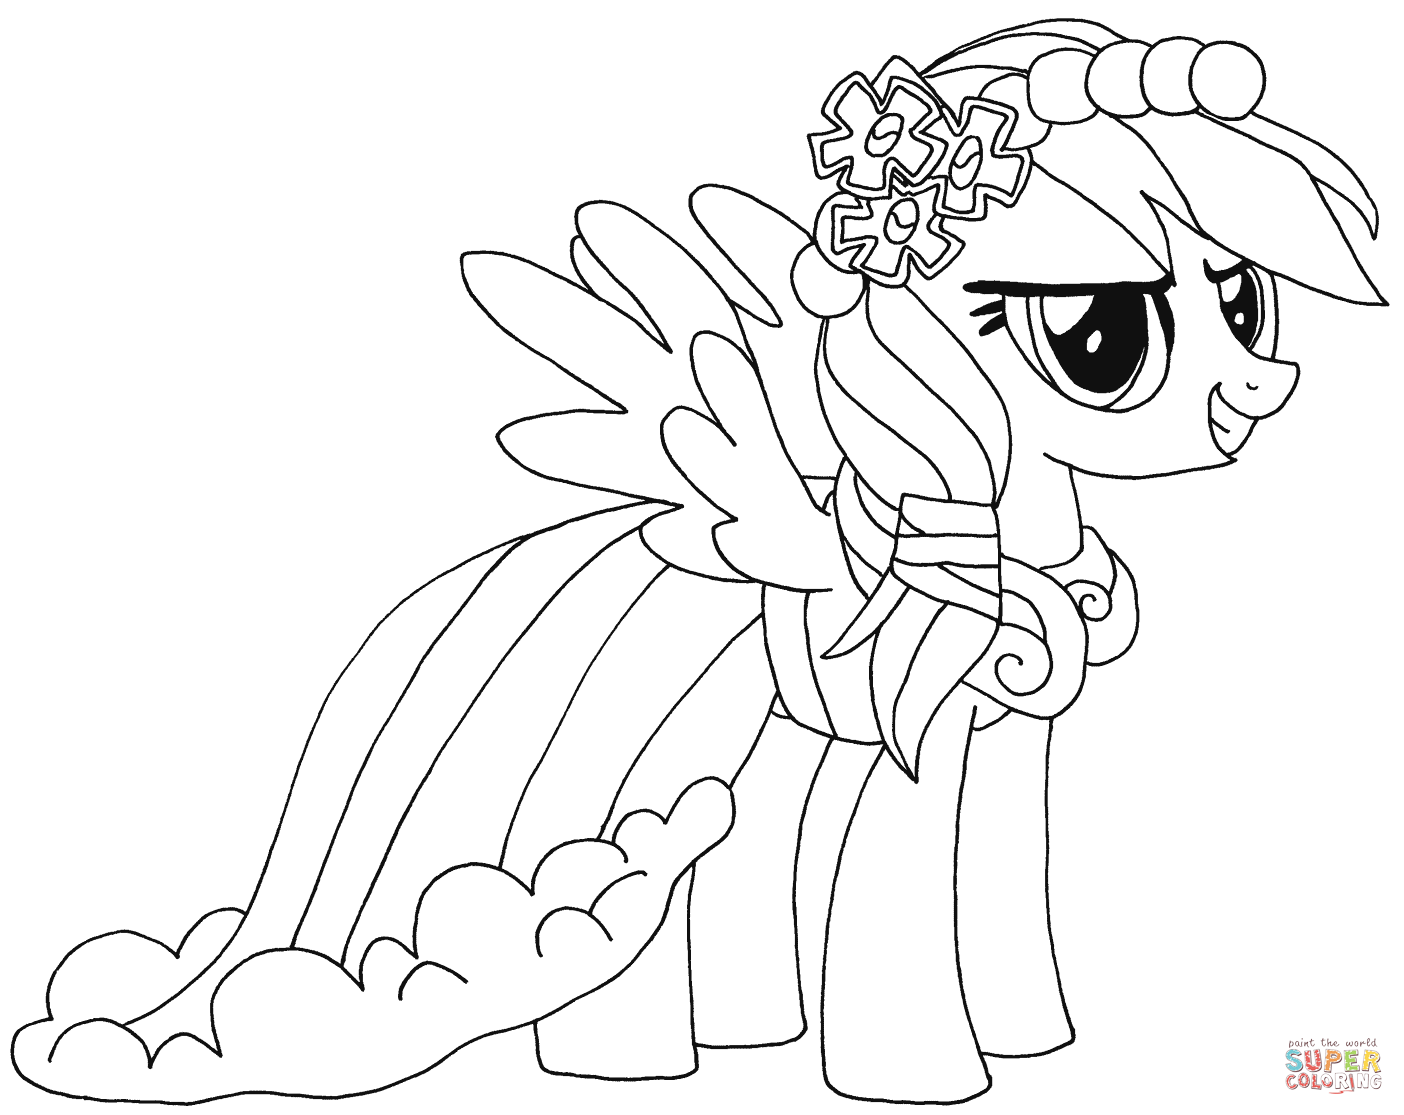 rainbow dash coloring pages free rainbow dash coloring page free download on clipartmag pages free dash coloring rainbow